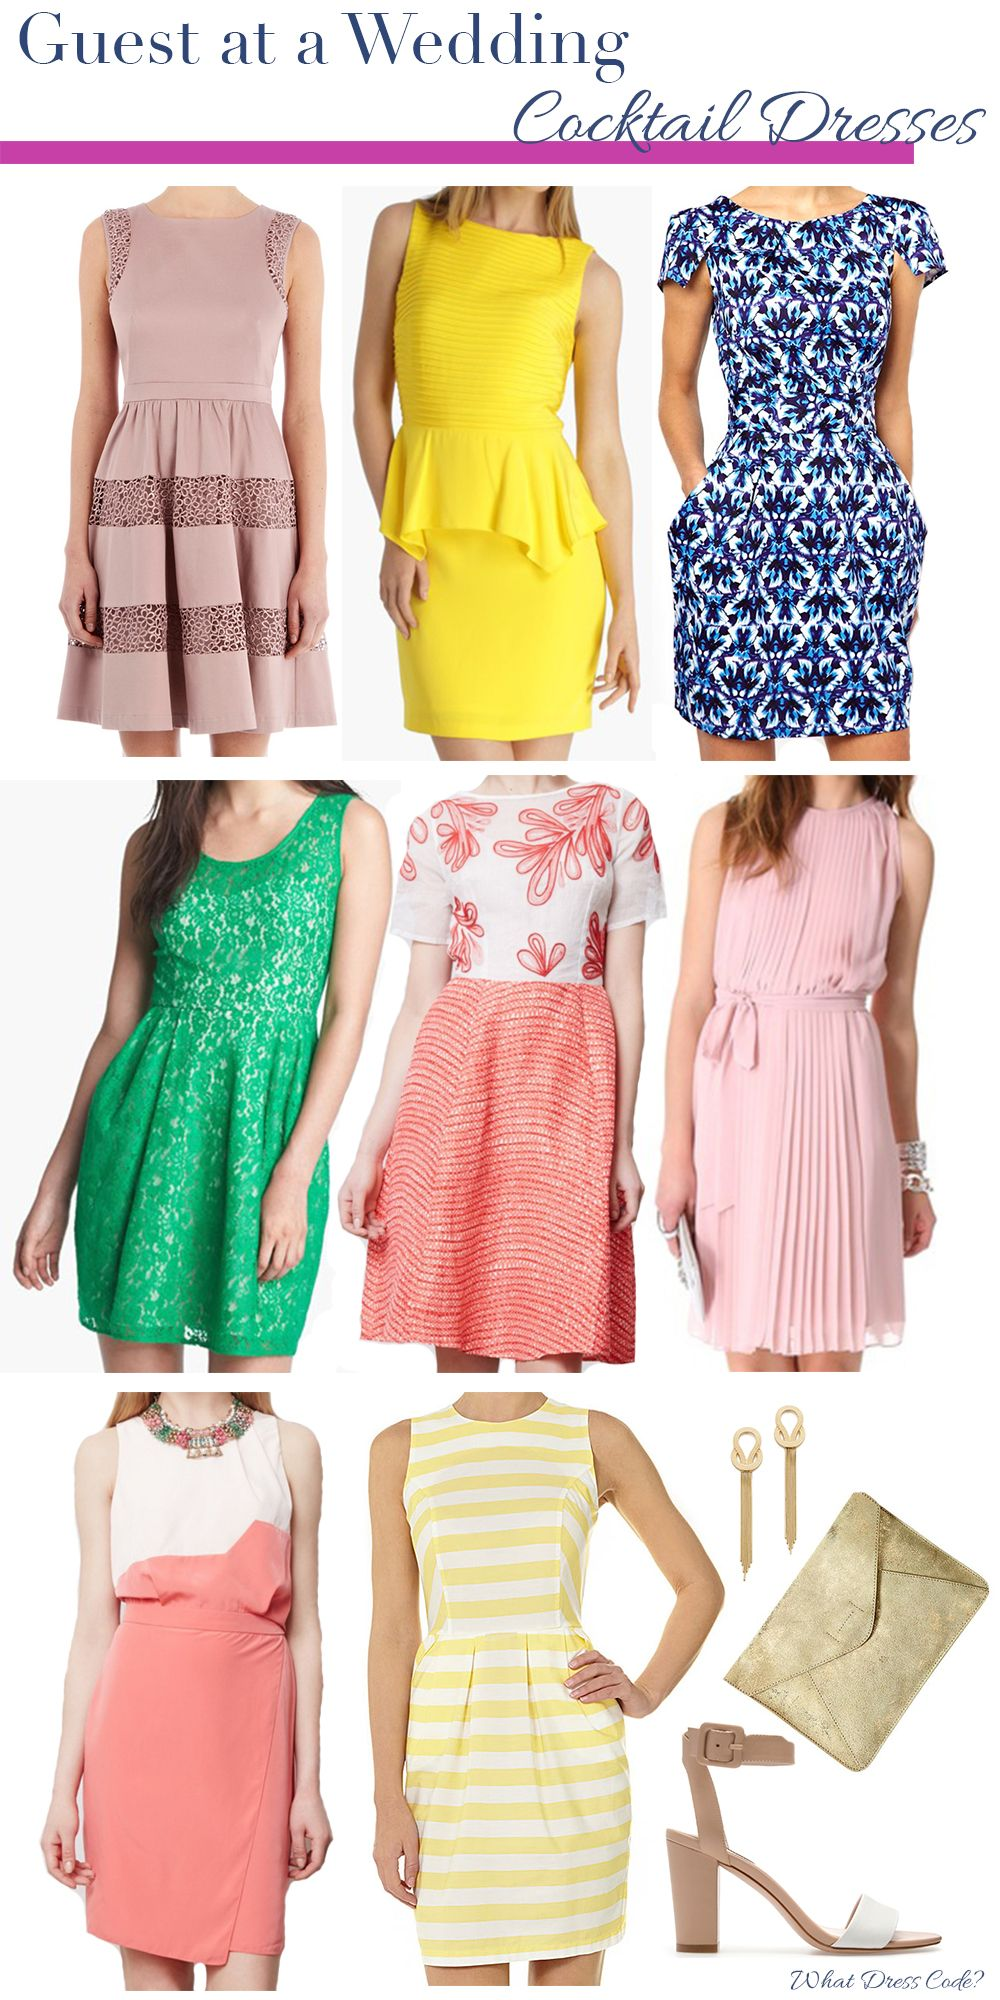 cocktail dresses for wedding What to Wear to a Wedding Cocktail Dresses weddingattire weddingdresscode weddingseason